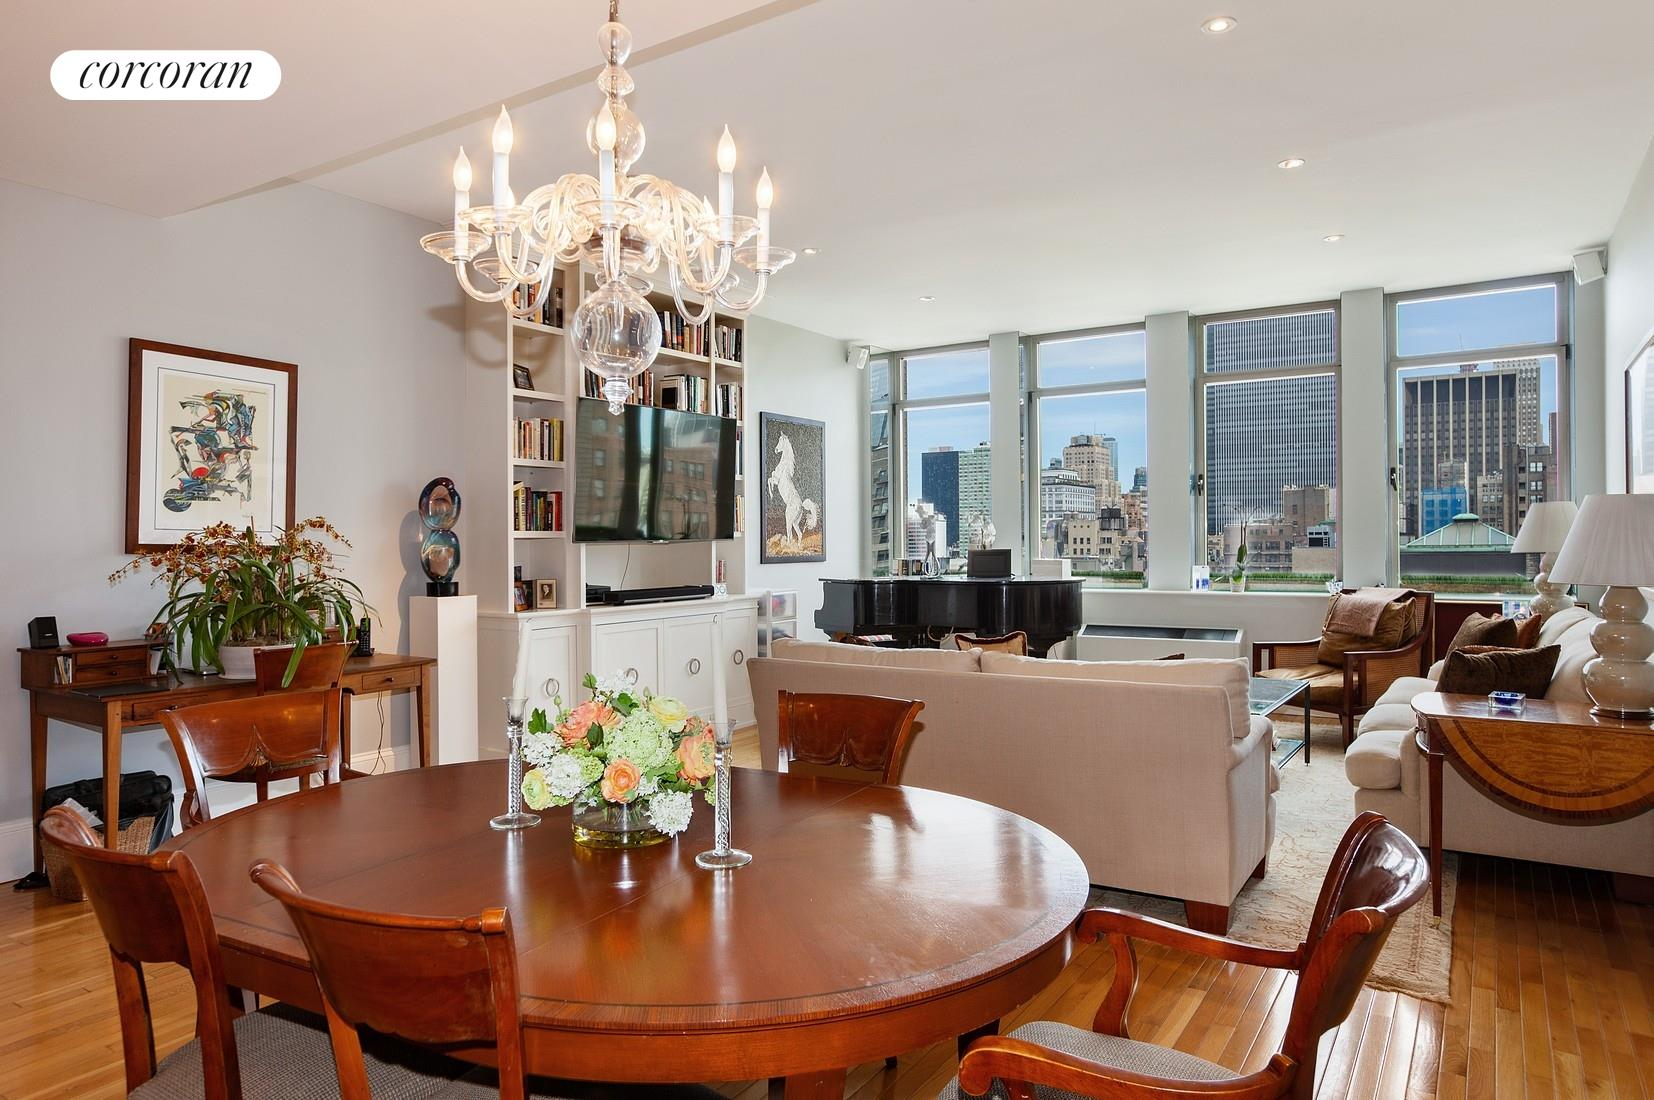 An extraordinary opportunity to lease this FULLY FURNISHED 2 bedroom 2 bath at the famed Chelsea Mercantile for 6-12 months. It features open northern views of the Manhattan skyline, an open kitchen with island, laundry (in apartment), 2 enormous bedrooms and baths. The second bedroom is configured as an office with a murphy bed.The Chelsea Mercantile is a full service building conveniently situated between the Flatiron District and West Chelsea. And, Whole Foods is on-site.